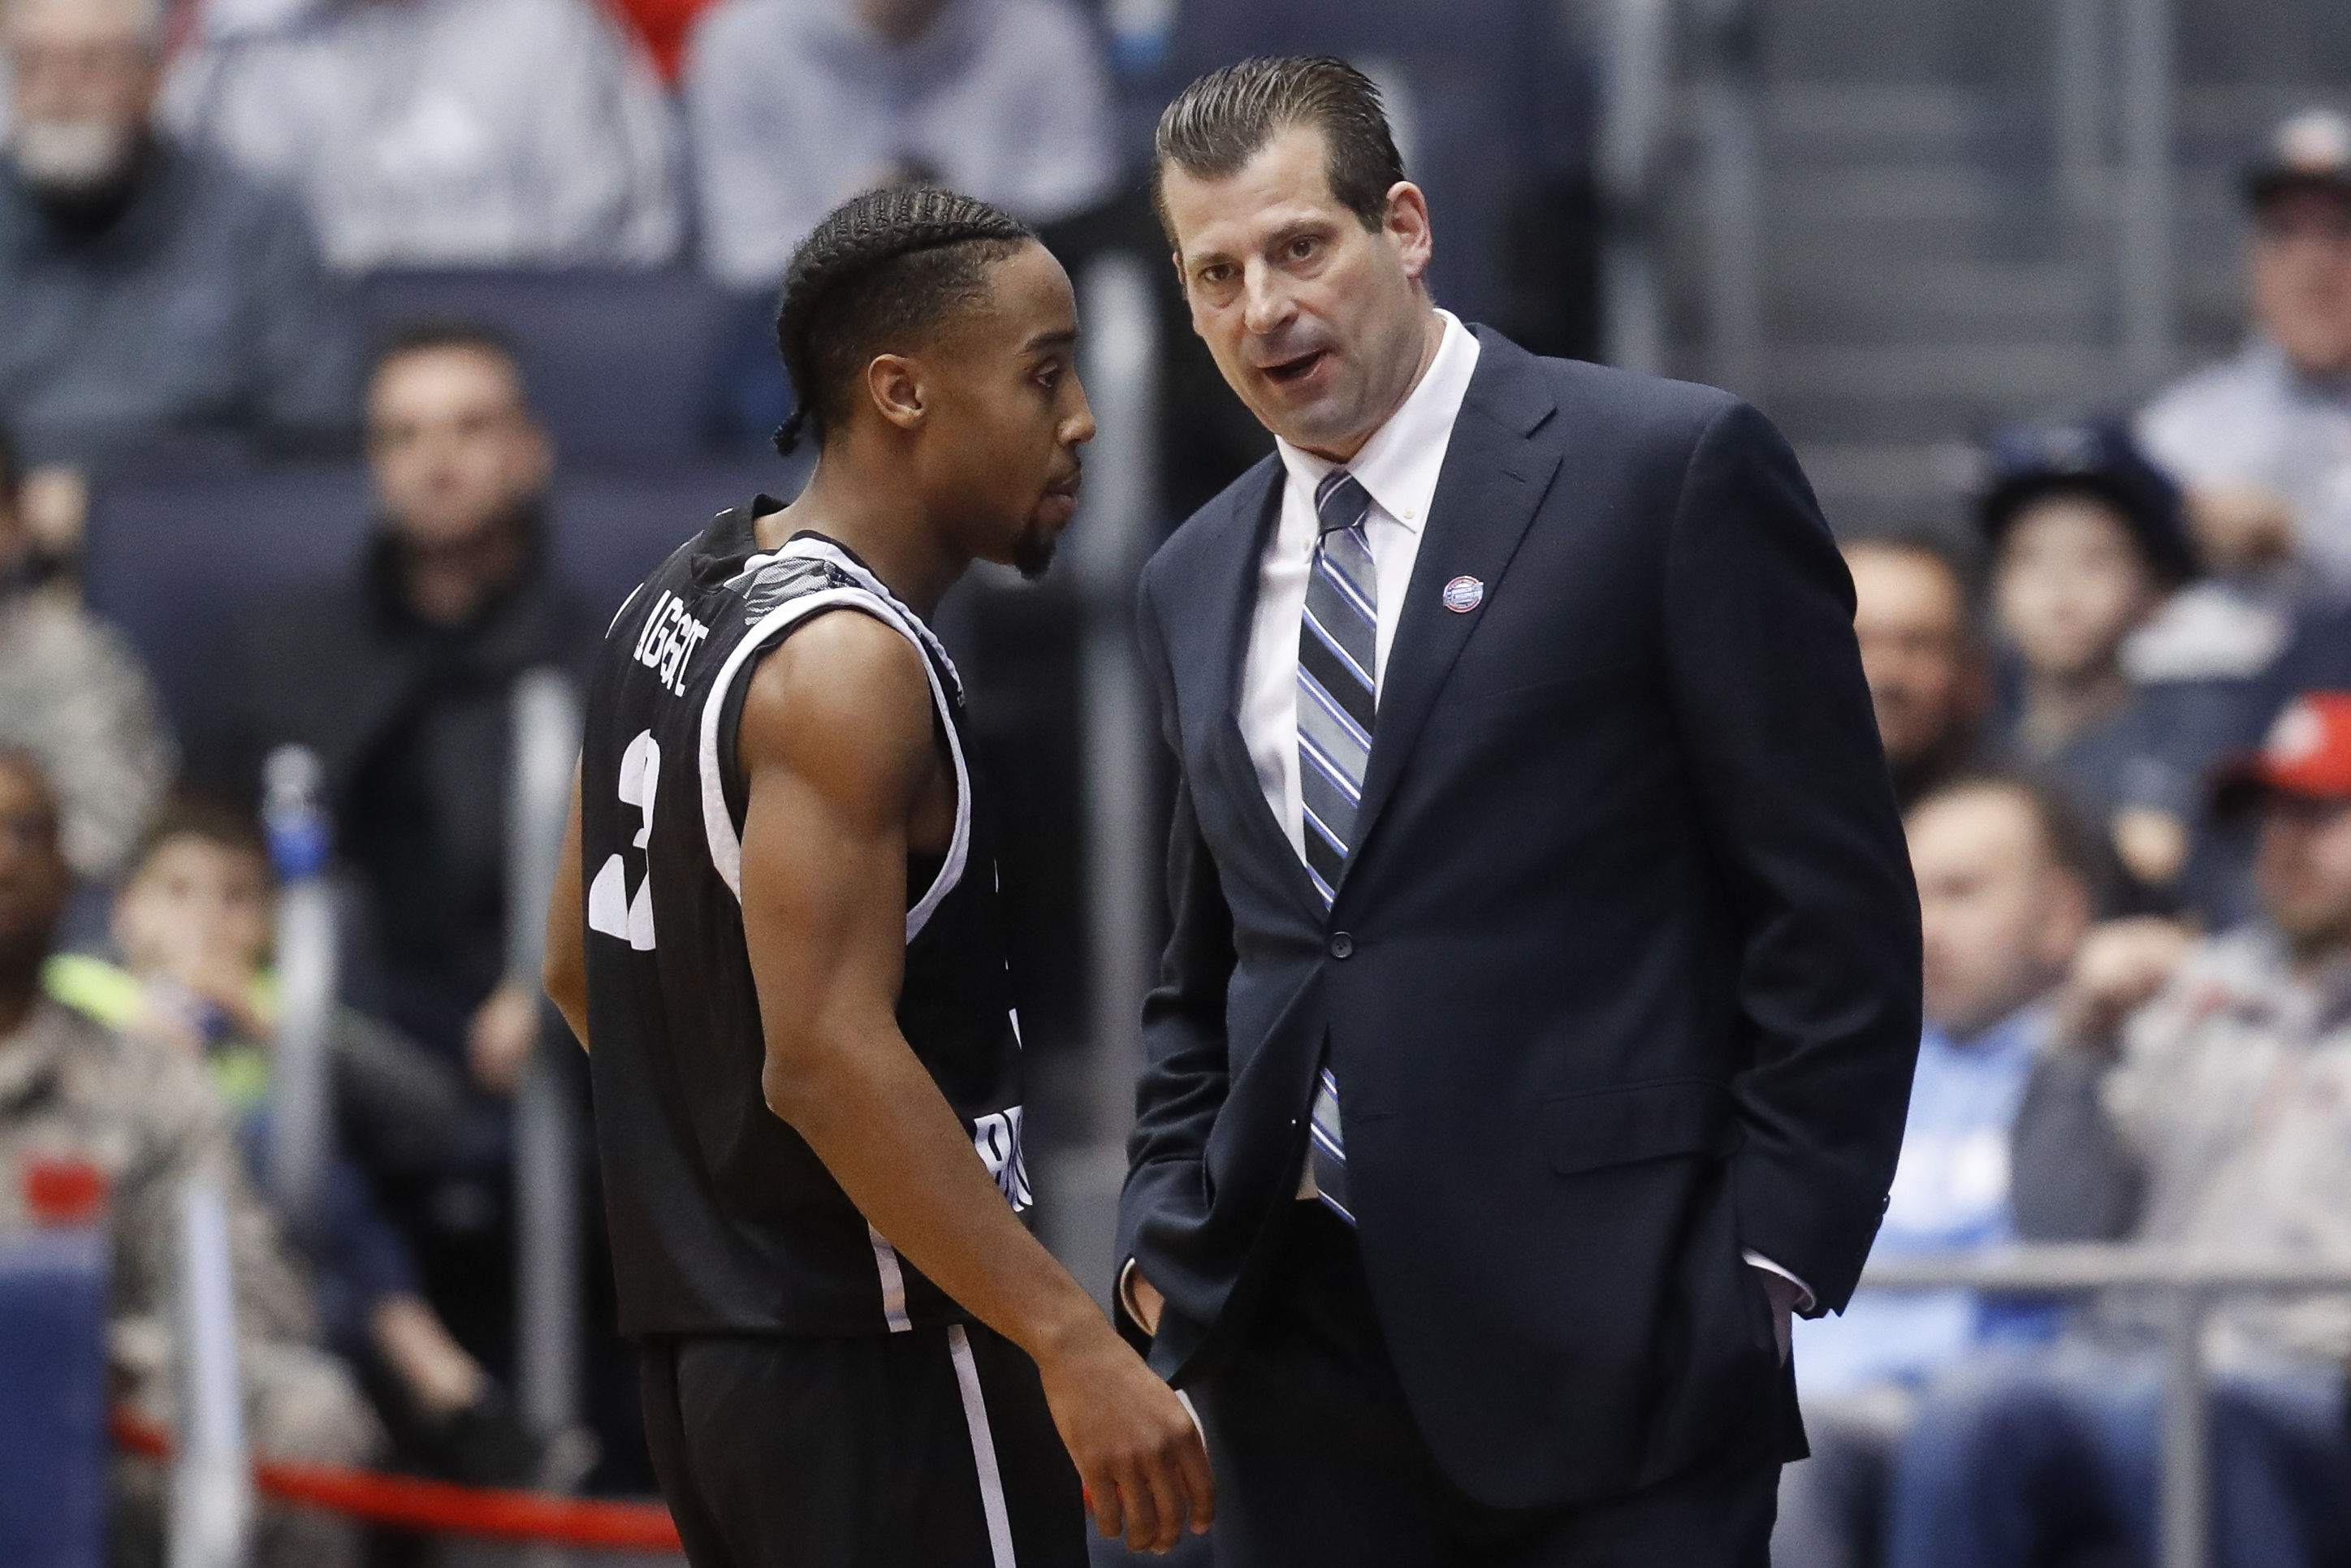 LIU Brooklyn head coach Jack Perri, right, speaks with Jashaun Agosto during the first half of a First Four game of the NCAA men's college basketball tournament against Radford, Tuesday, March 13, 2018, in Dayton, Ohio. (AP Photo/John Minchillo)